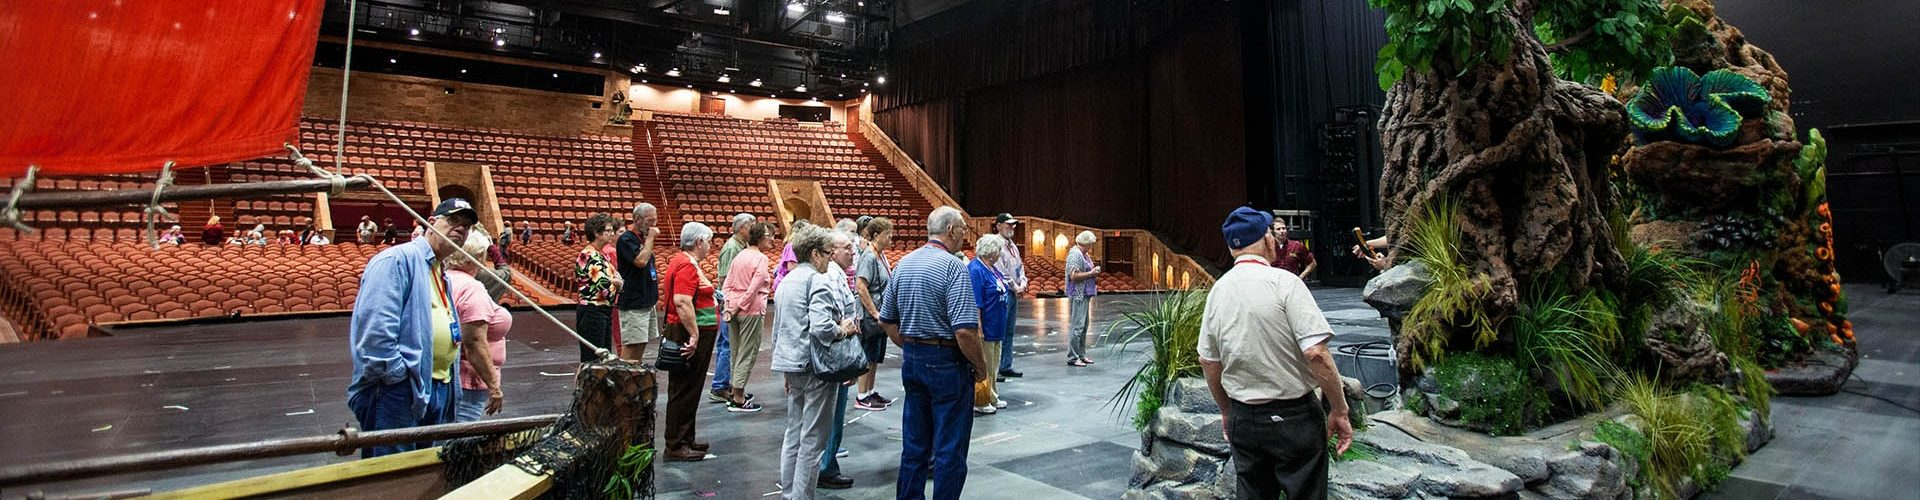 Walk the 20,000 square-foot stage and get a unique perspective of the theatre and everything that goes into creating the unforgettable shows.